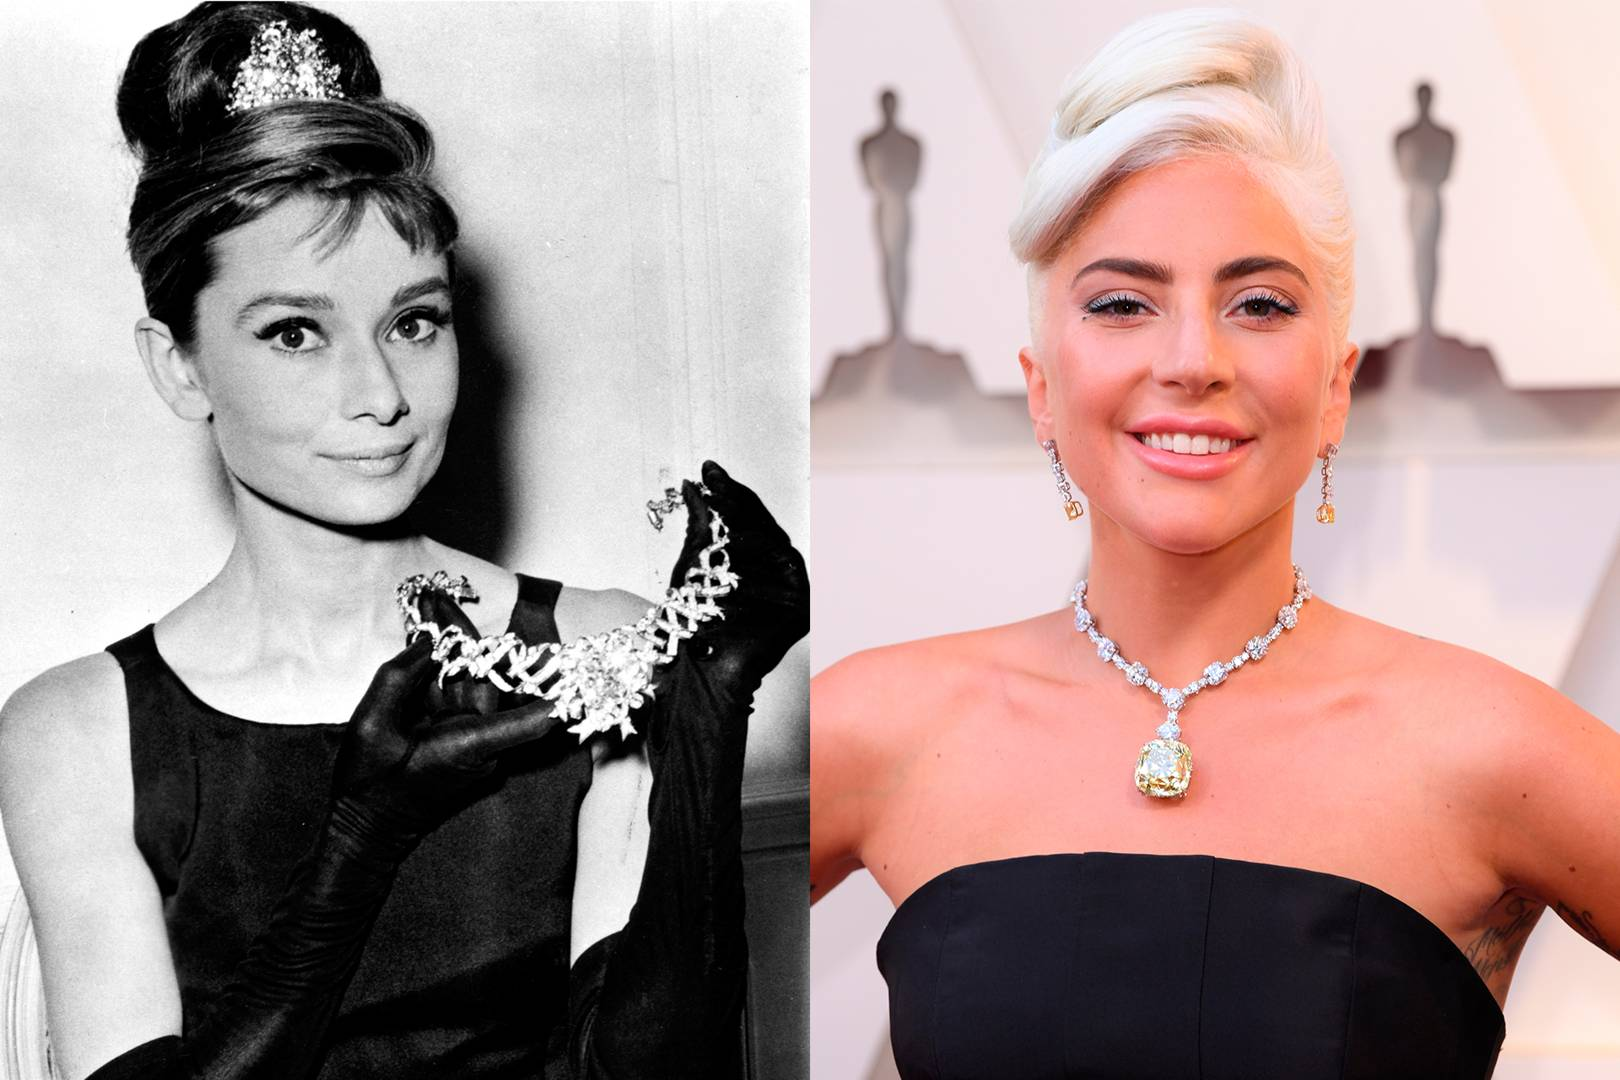 Lady Gaga S Tiffany Co Diamond Necklace At Oscars Tatler